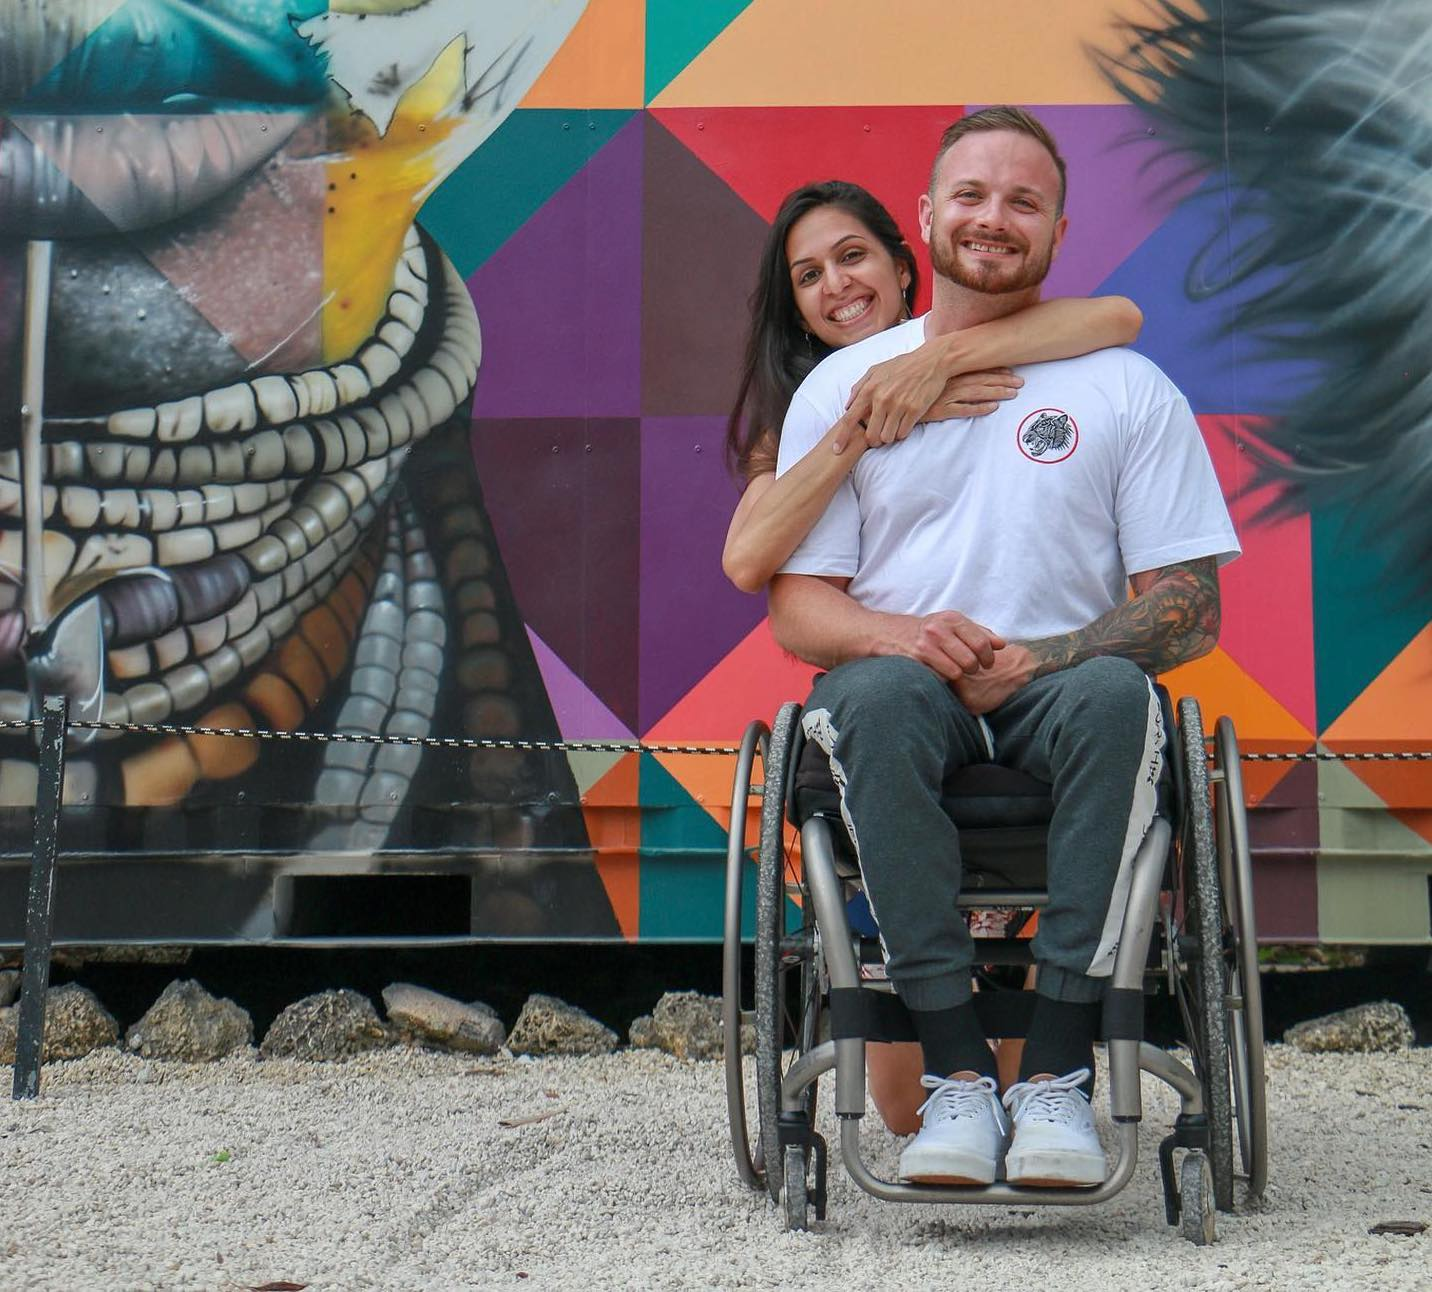 Richard Corbett is sitting in his wheelchair wearing a white t-shirt and jeans. His girlfriend, who has long dark hair, is hugging his shoulders from behind. They are in front of a colorful mural.